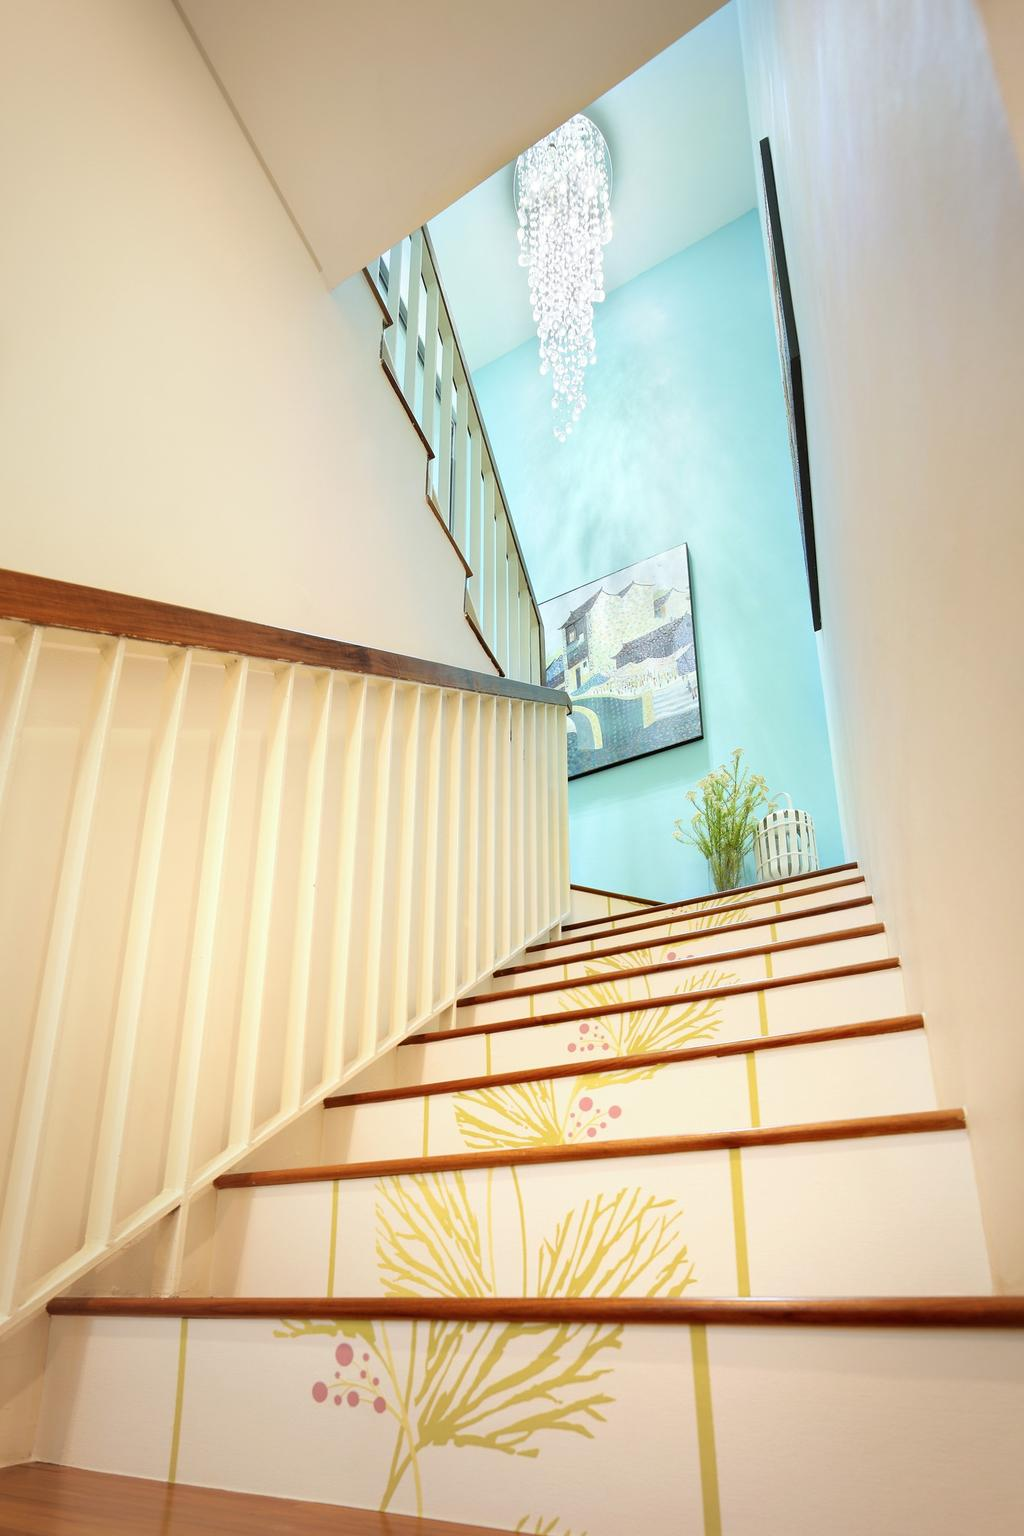 Contemporary, Condo, 56 St Patrick Road, Interior Designer, Space Define Interior, High Ceiling, Stairs, Staircase, Chandelier, Blue, Railing, Handrails, Plants, Wallpaper, Floral, Floral Wallpaper, Nature, Nature Wallpaper, Parquet, Balcony, Banister, Handrail